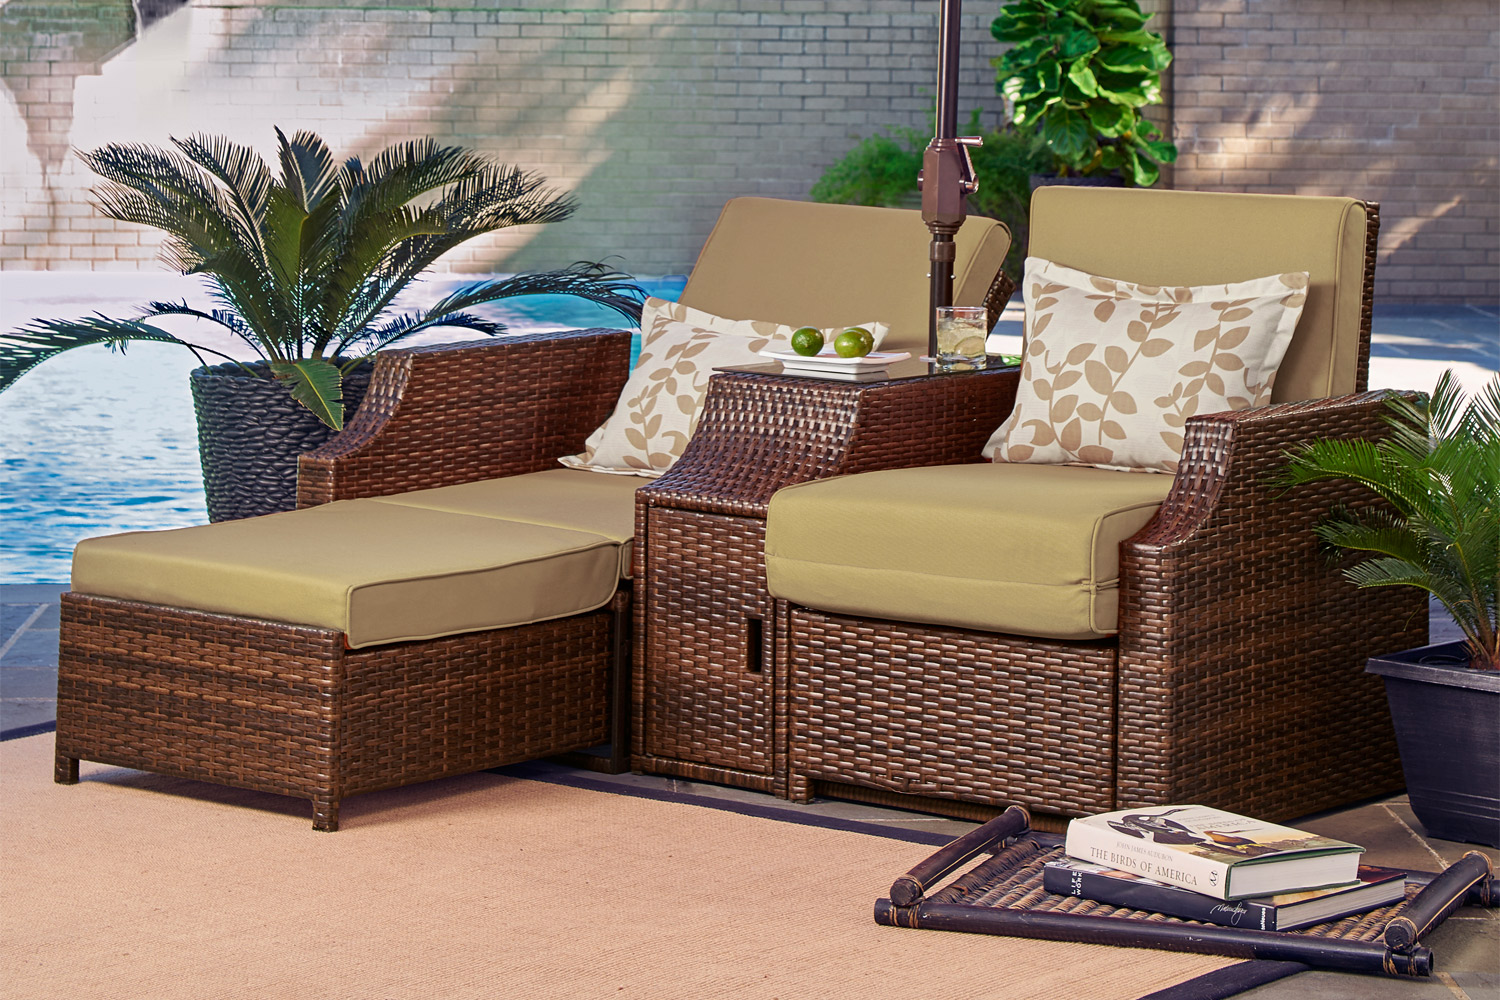 Outdoor Futon Sofa Bed Lounger Santorini Sand